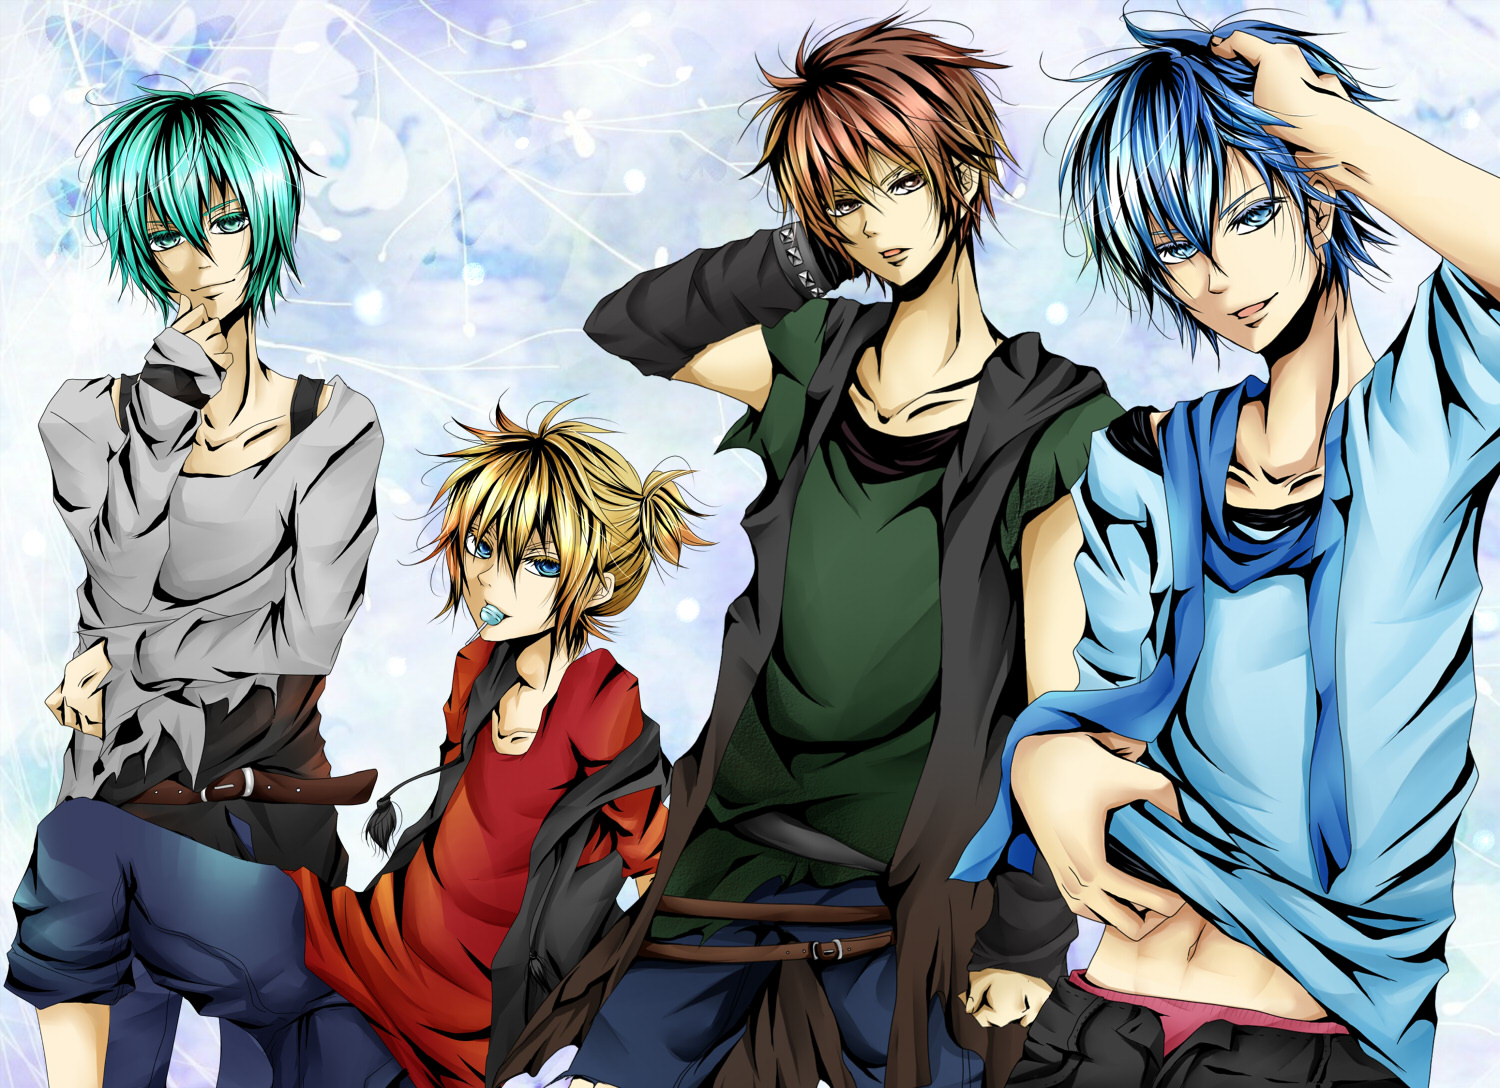 http://images5.fanpop.com/image/photos/26900000/Vocaloid-vocaloid-songs-26911642-1500-1088.jpg